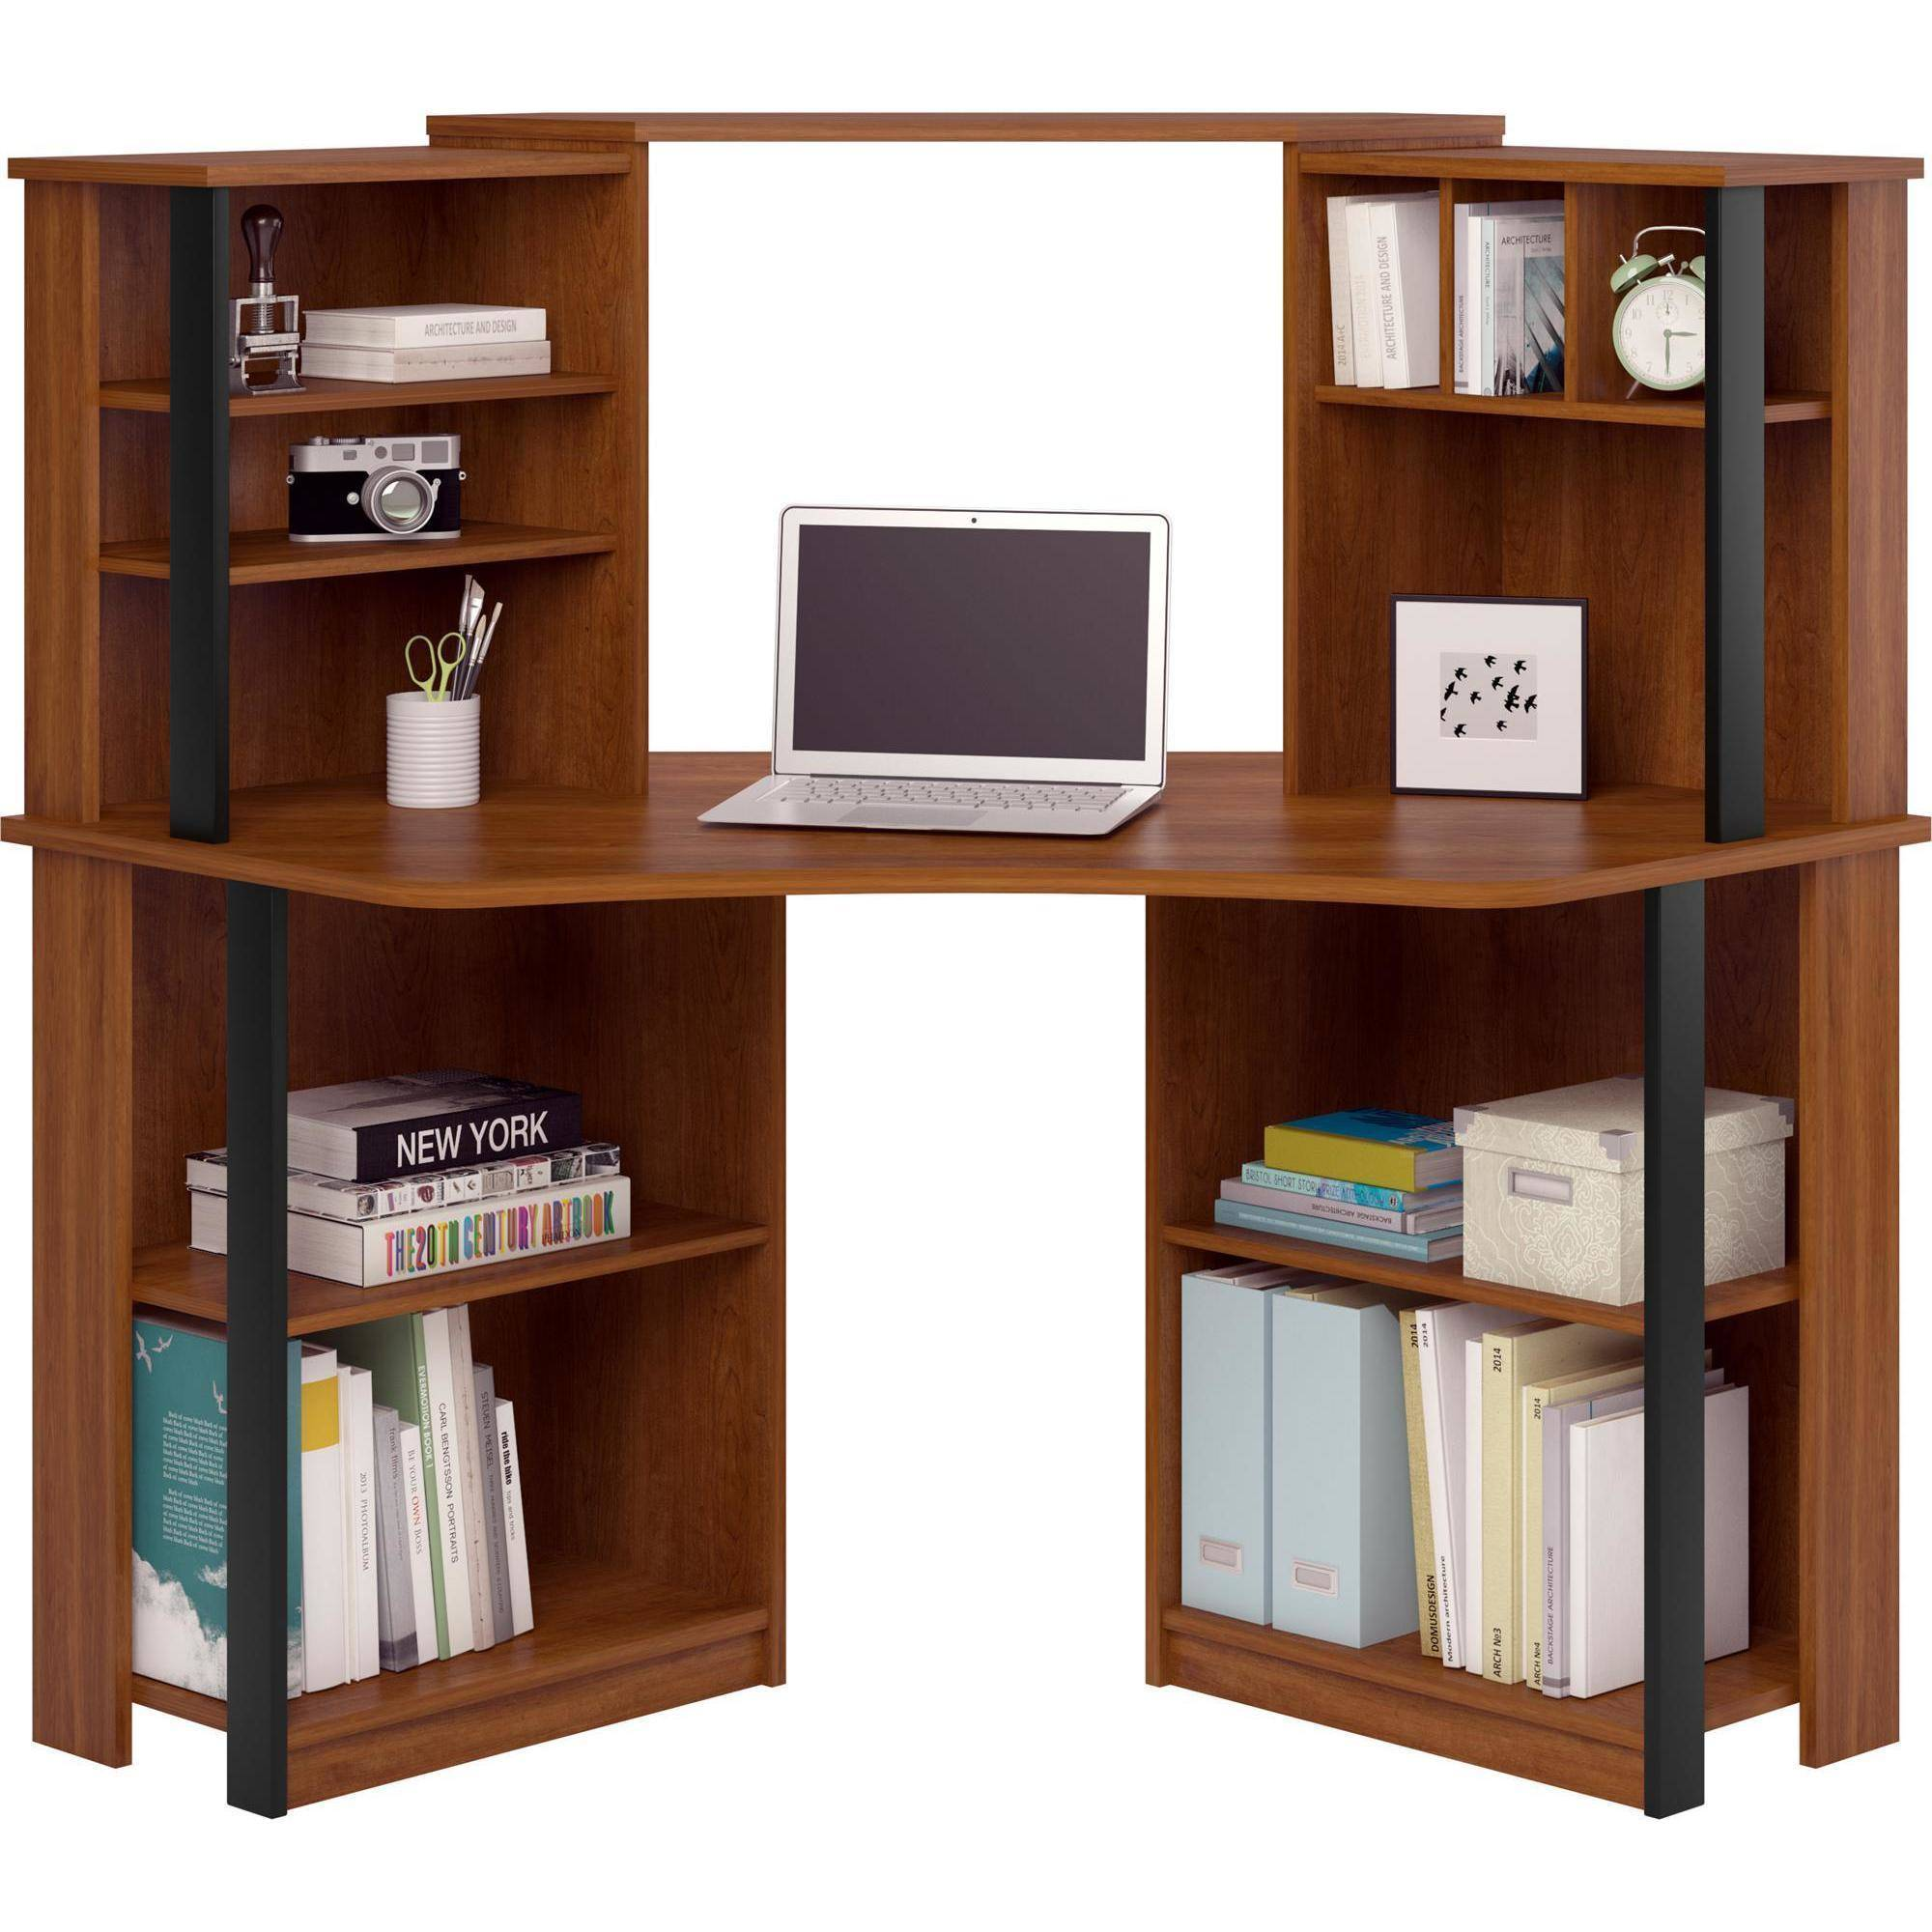 Mainstays Corner Work Station, Inspire Cherry/Black Finish